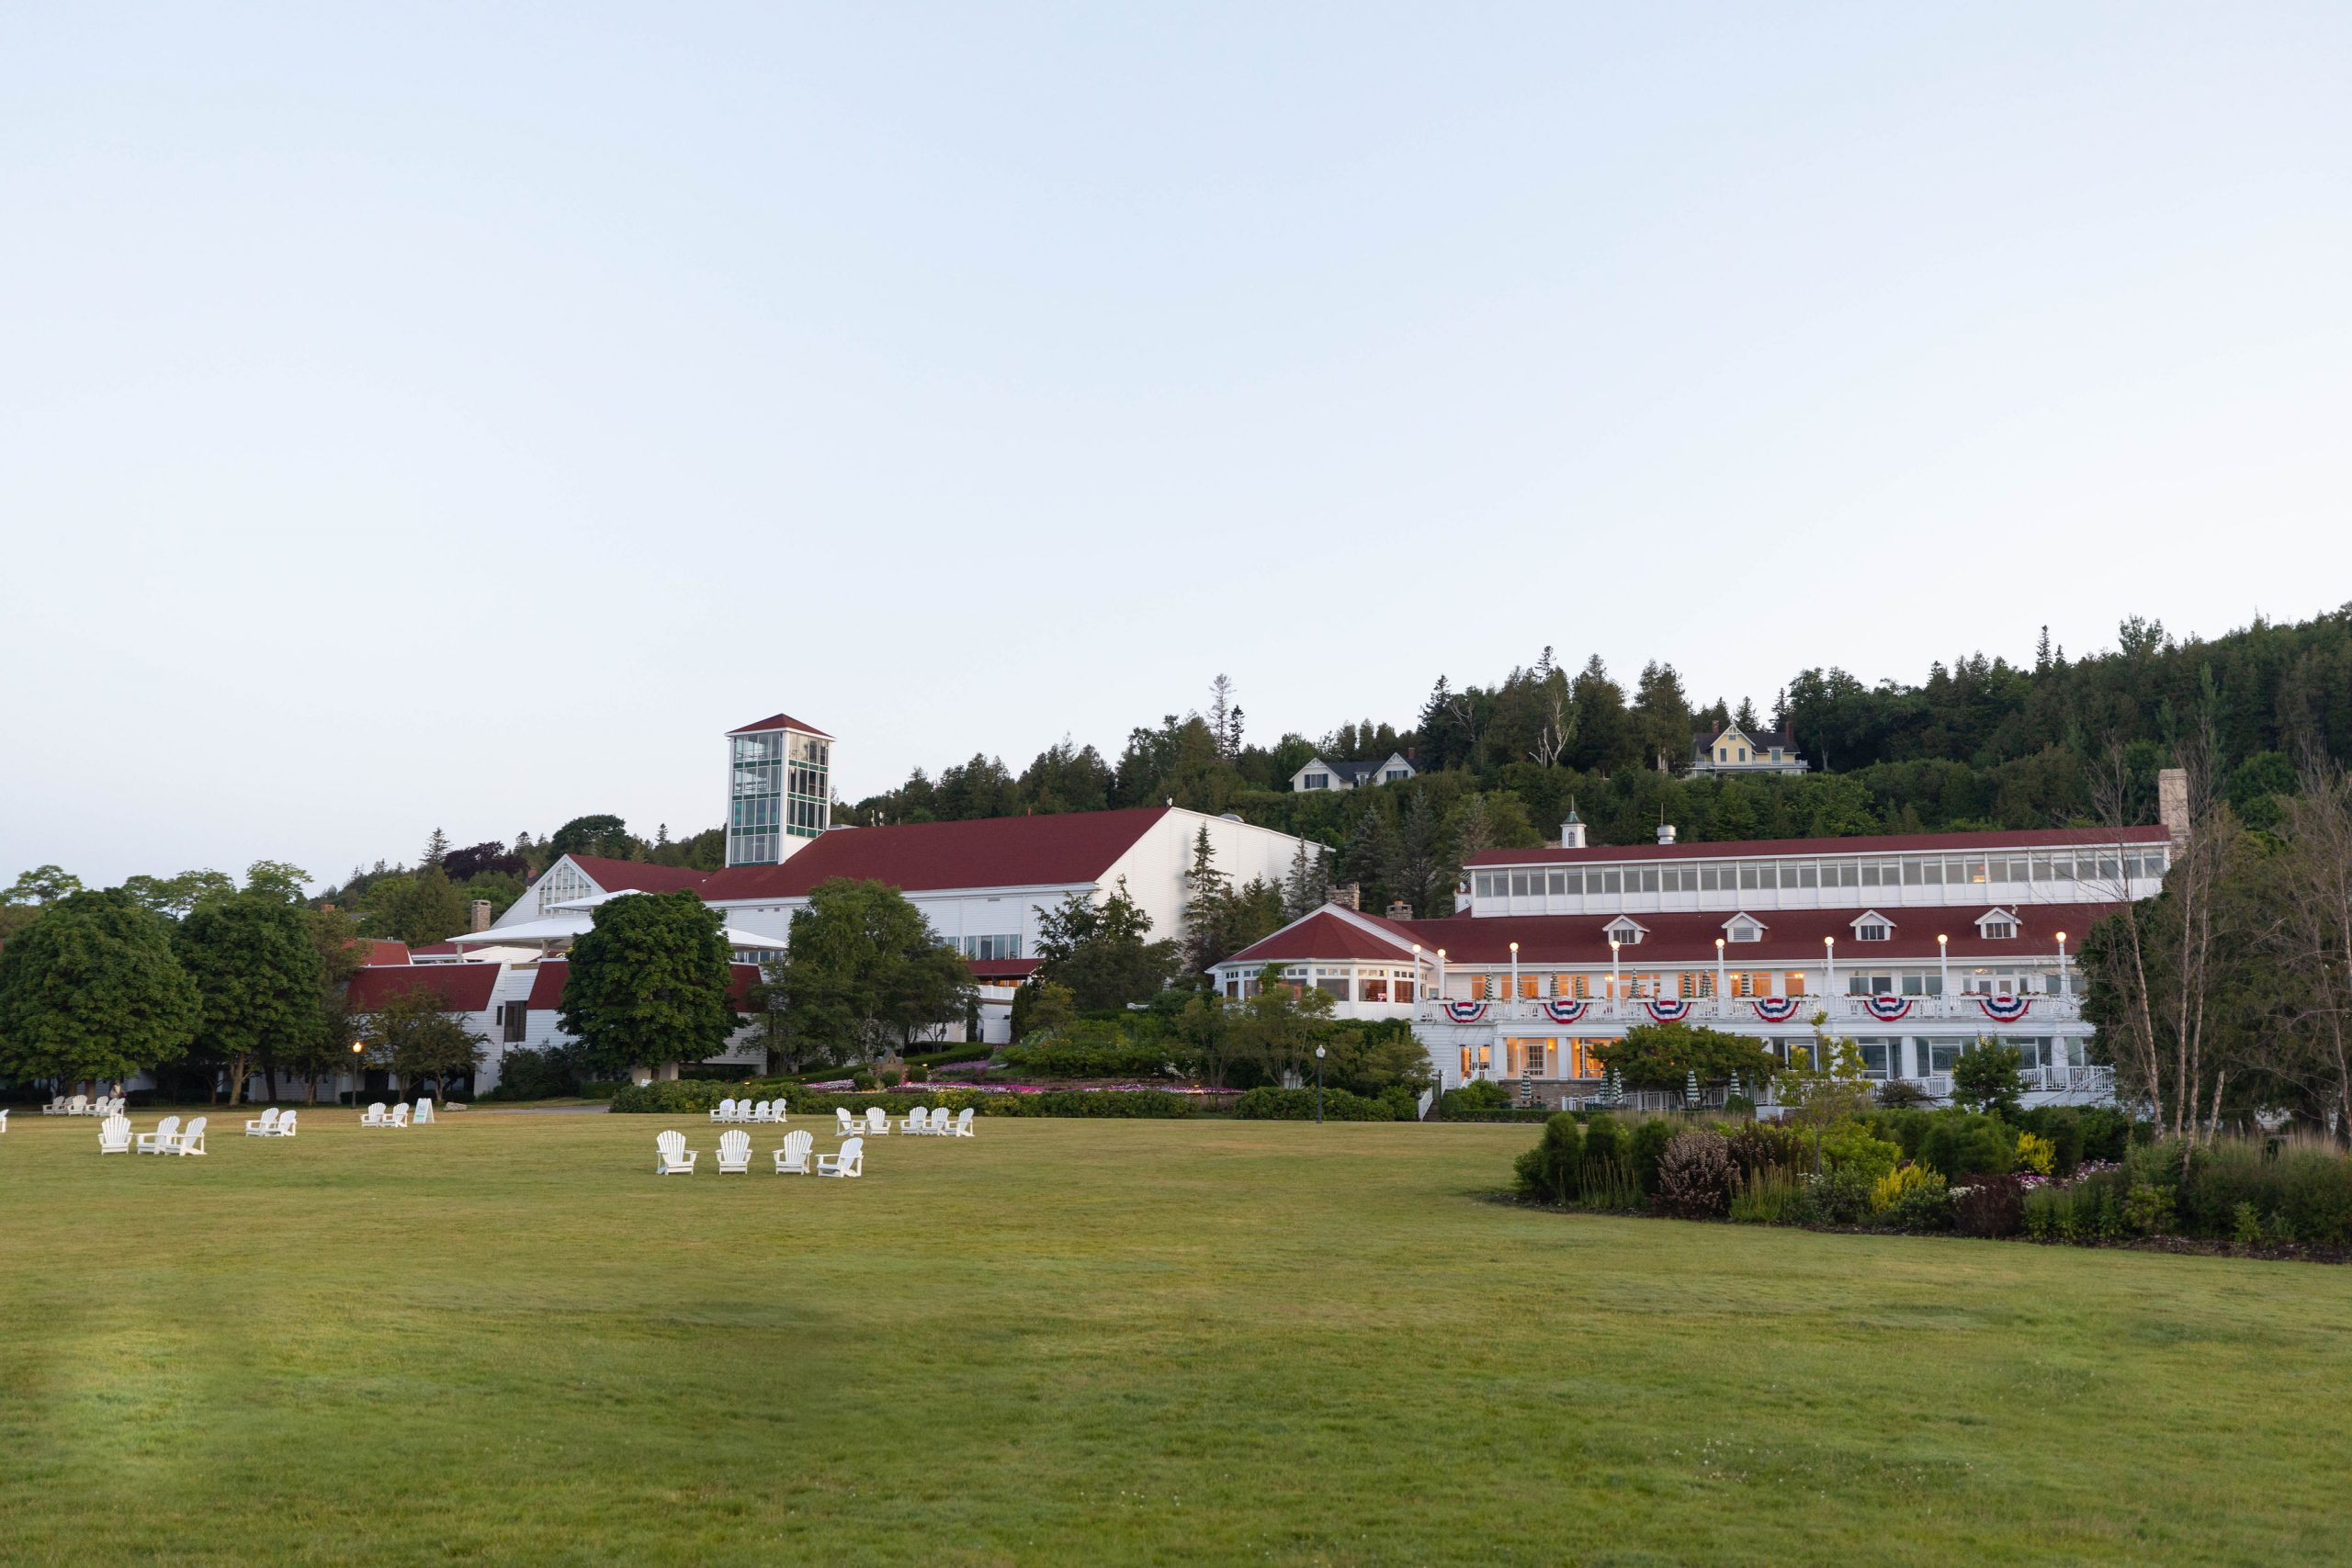 Mission Point Resort Review on Mackinac Island Midwest Michigan Luxury Hotels by @AnnieFairfax